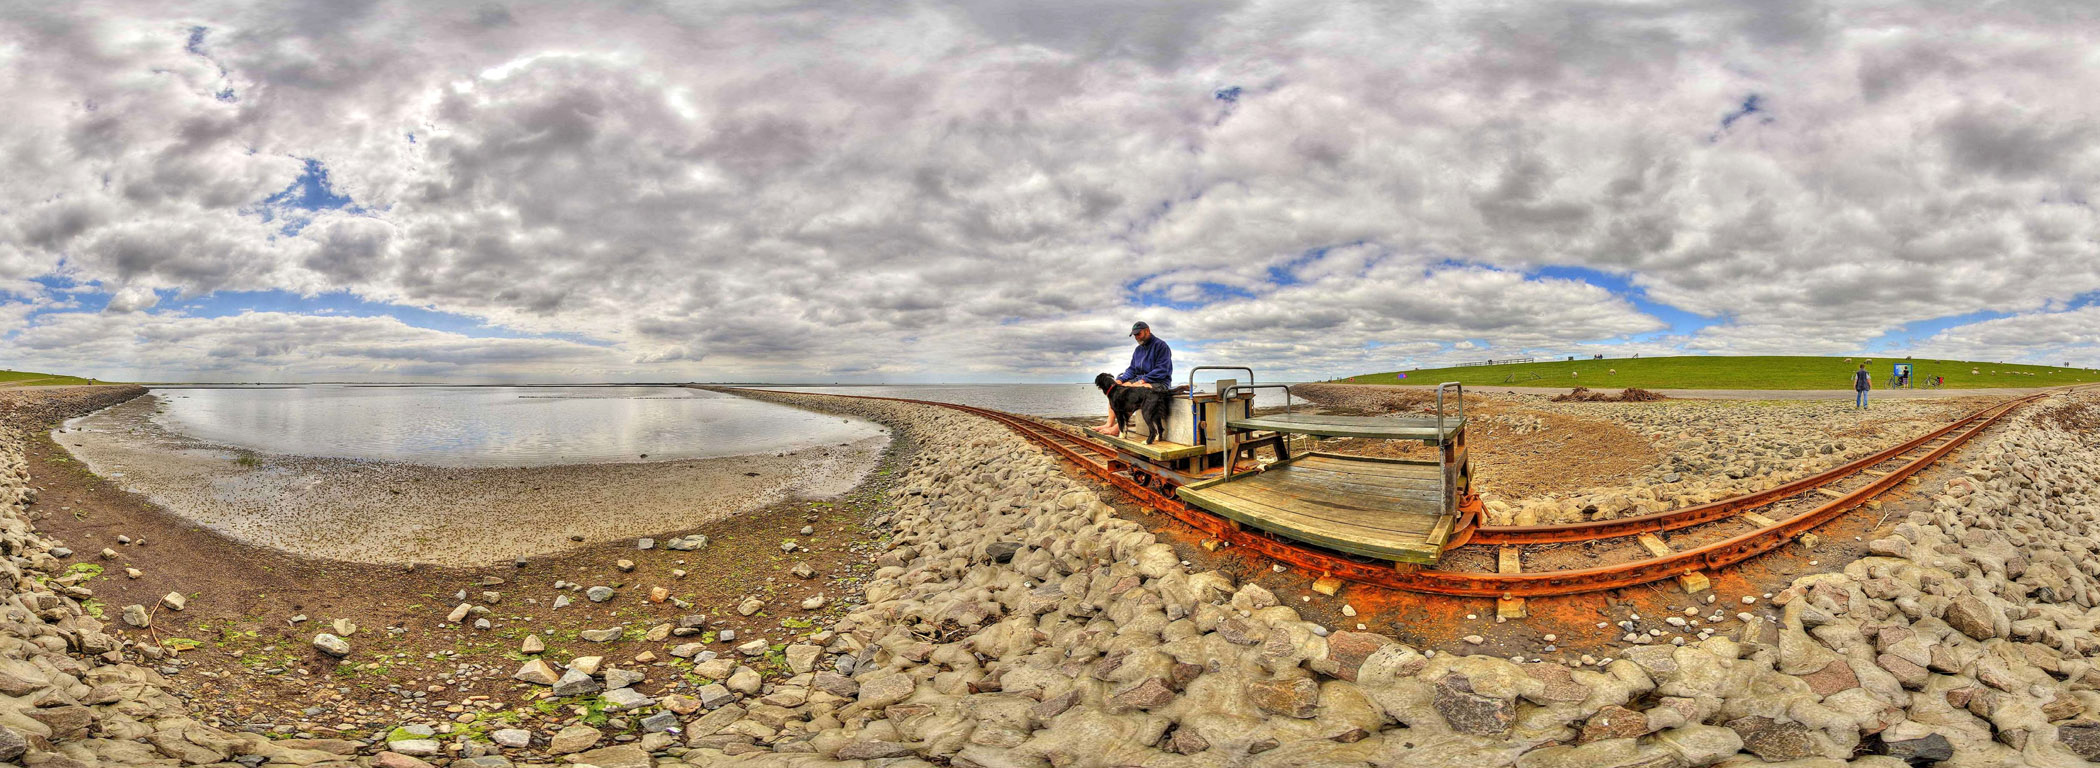 rail-photo-panoramique-objectif-grand-angle